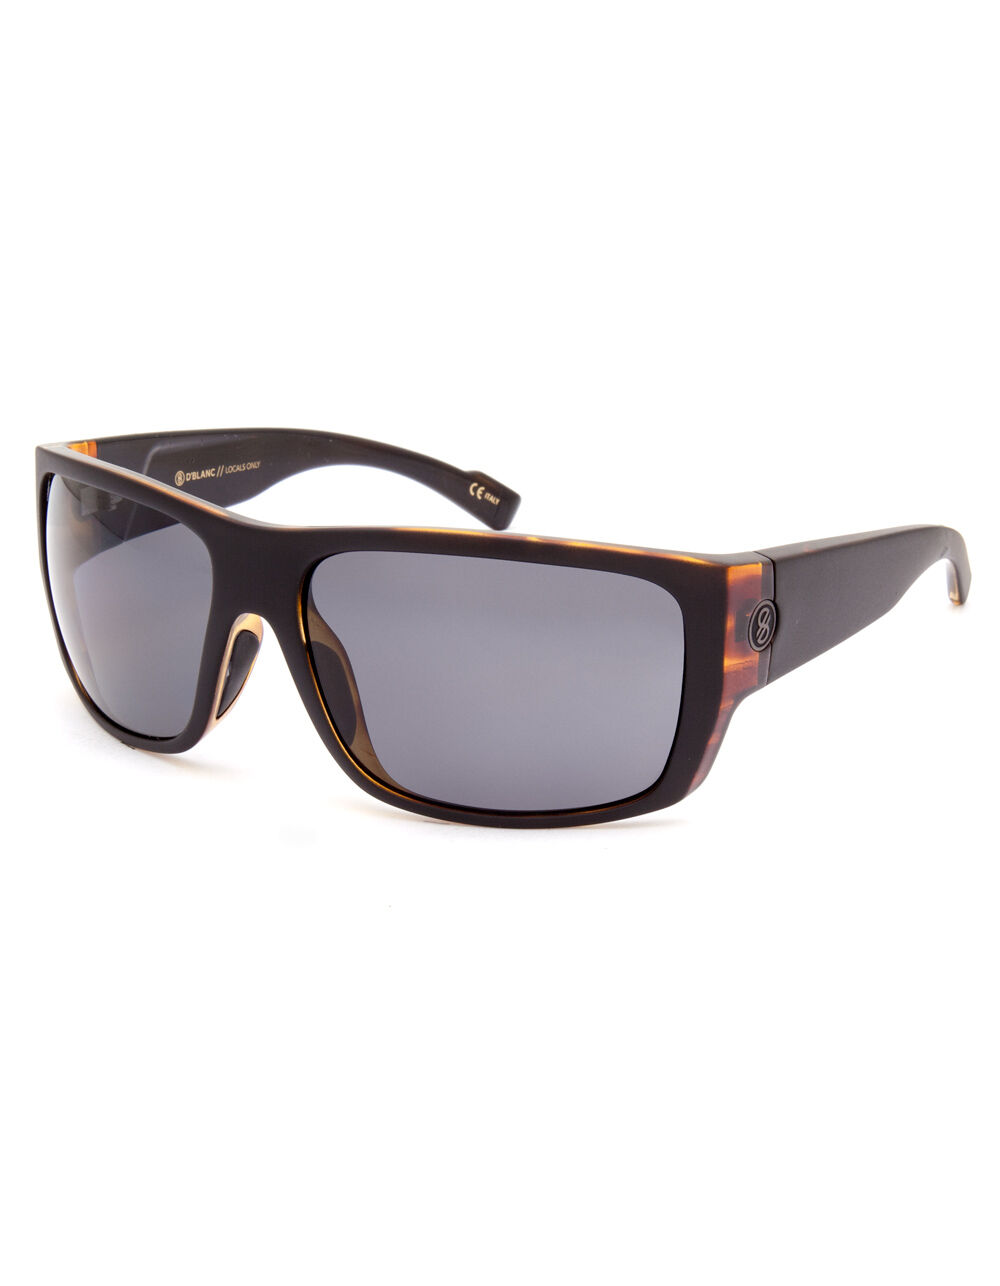 D'BLANC Locals Only Polarized Sunglasses